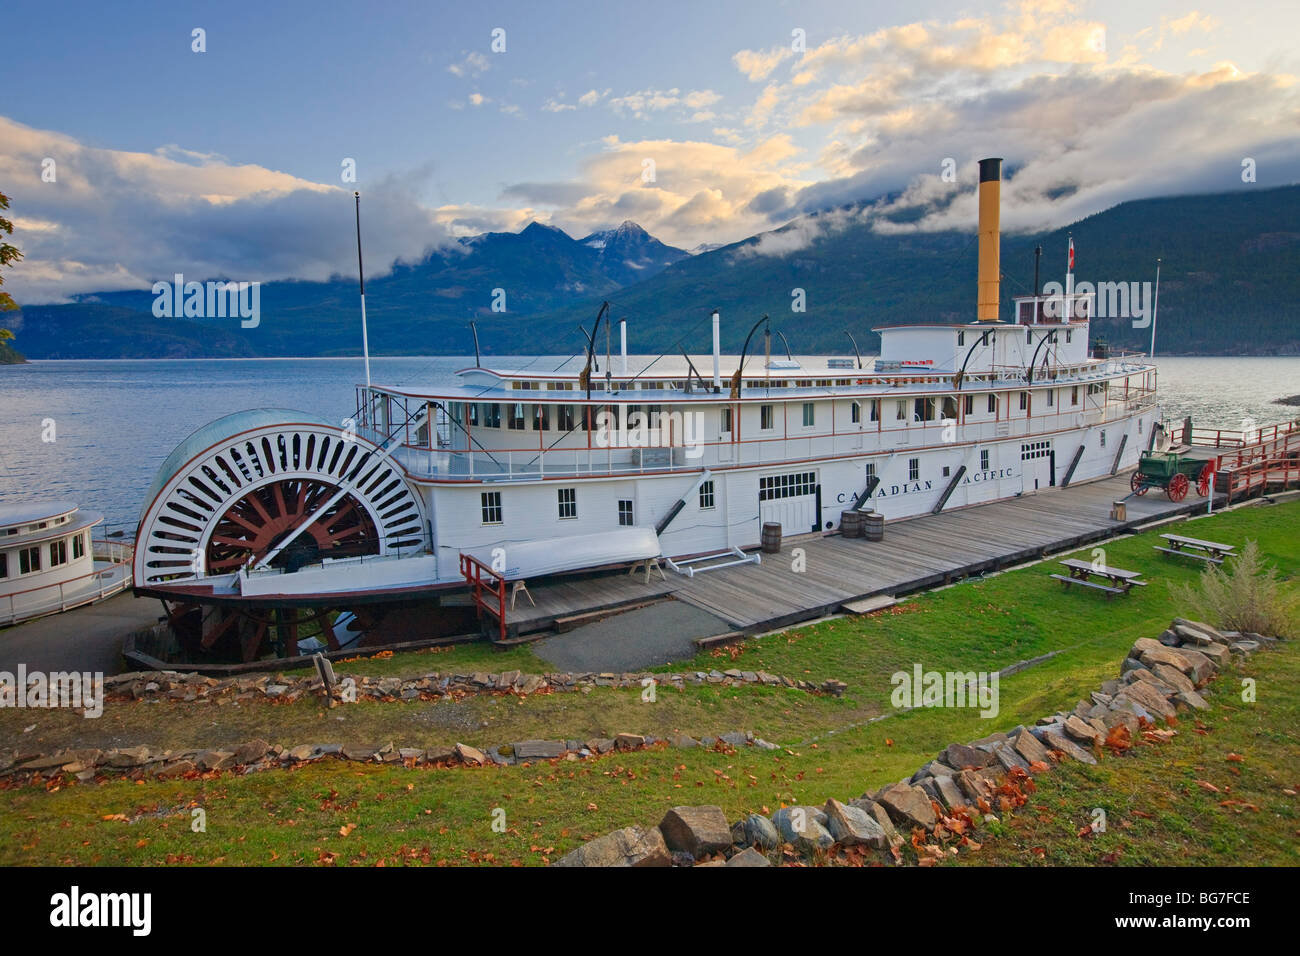 SS Moyie National Historic Site on the shores of Kootenay Lake in the town of Kaslo, Central Kootenay, British Columbia, - Stock Image